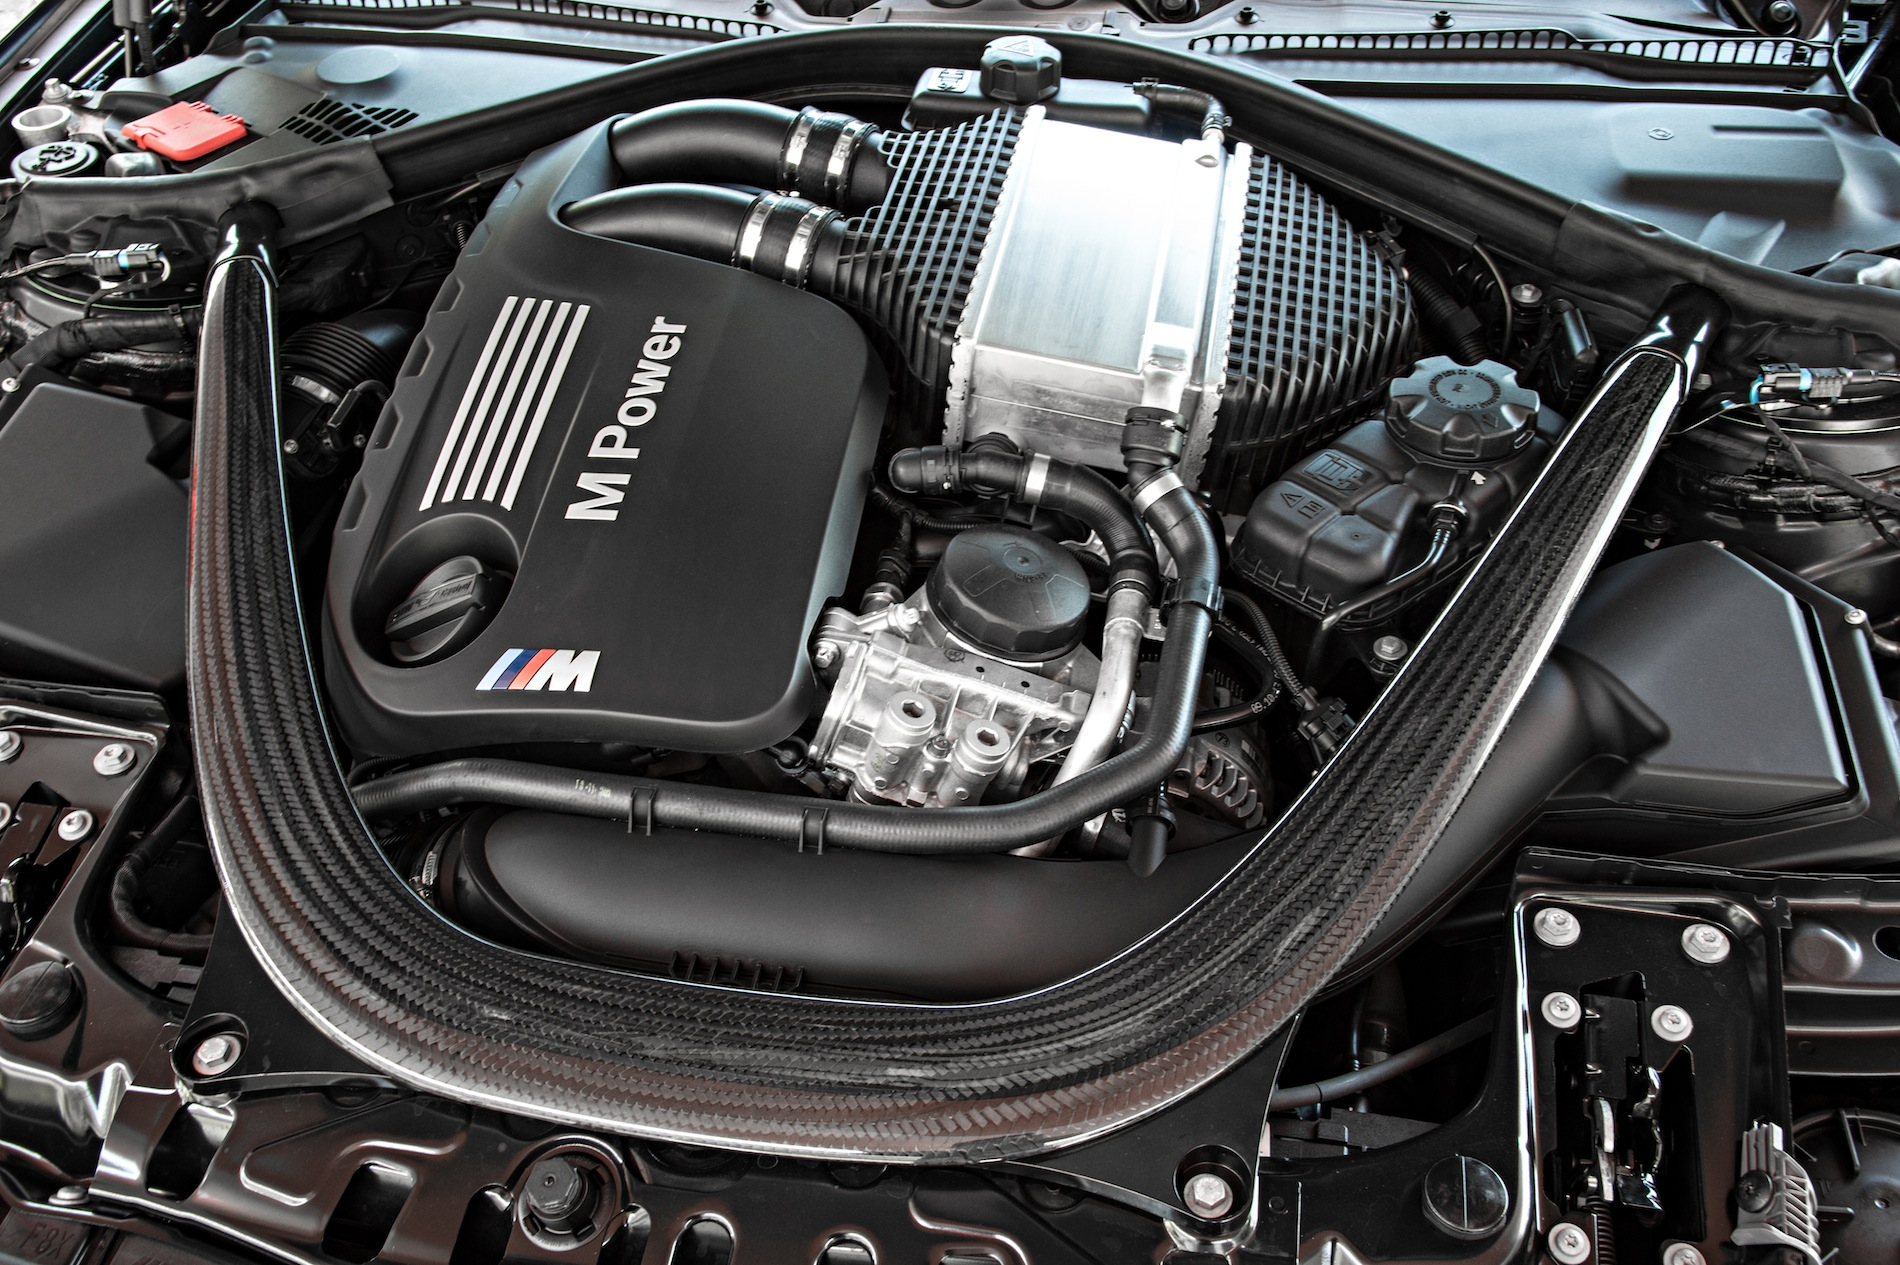 2015 Bmw M3 Engine Diagram - Boss Car Stereo Wiring Harness Adapters -  wiring.sampaibila.jeanjaures37.fr | 2015 Bmw M3 Engine Diagram |  | Wiring Diagram Resource